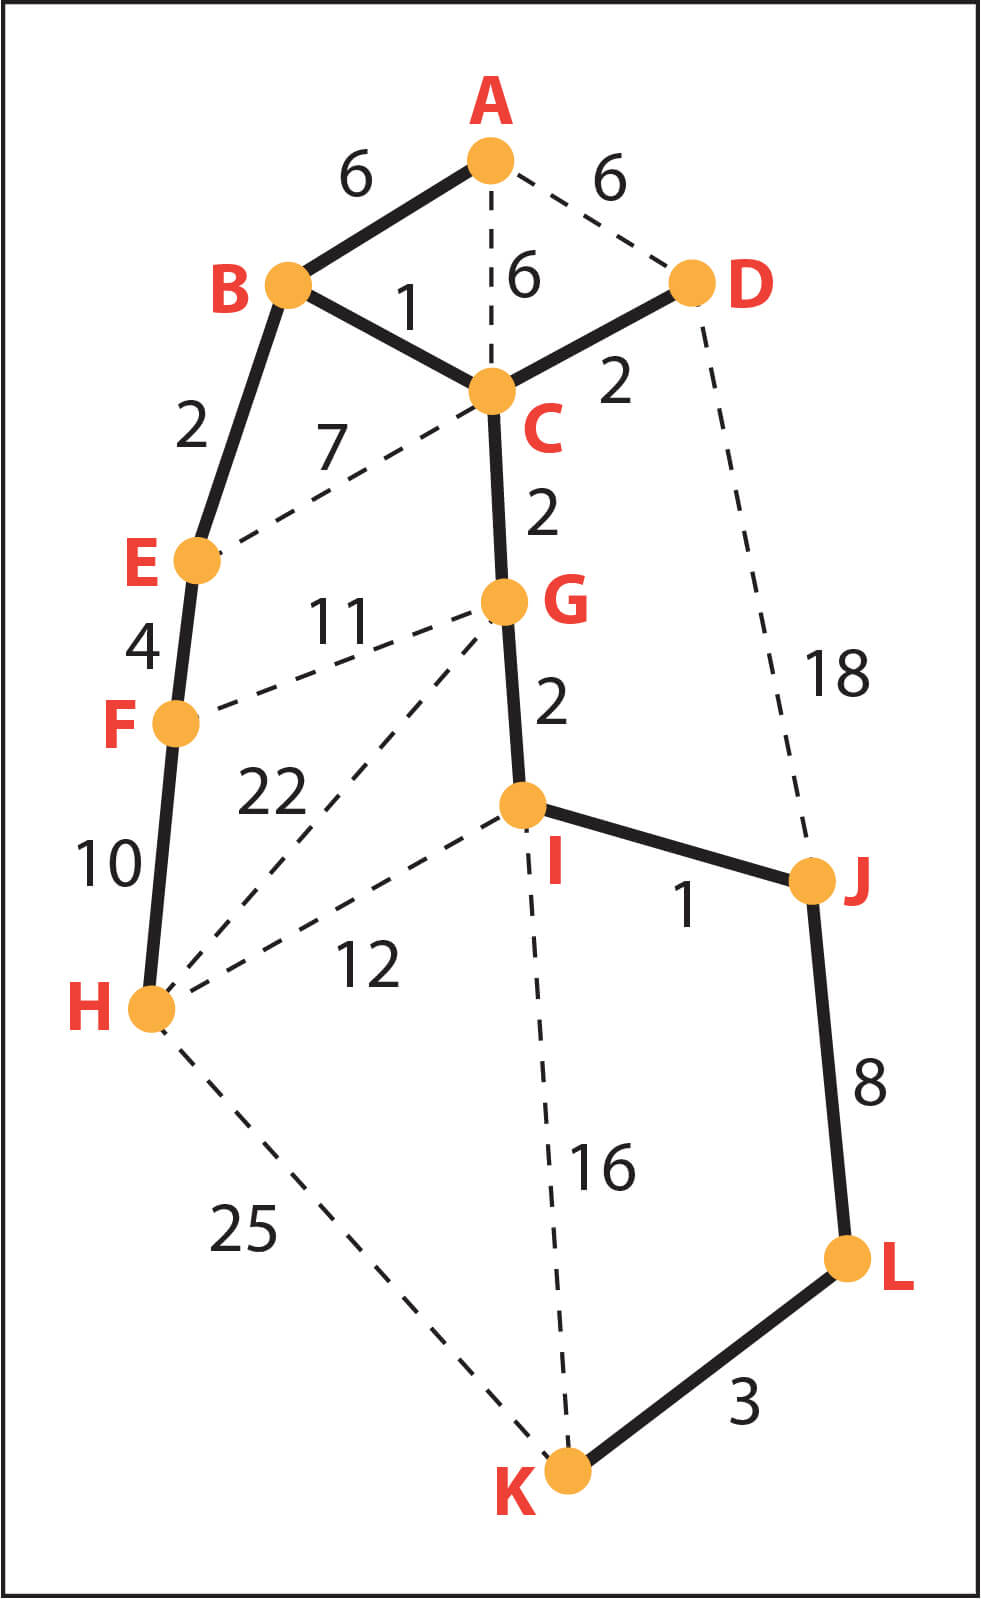 Kruskal's algorithm (Minimum spanning tree) with real-life